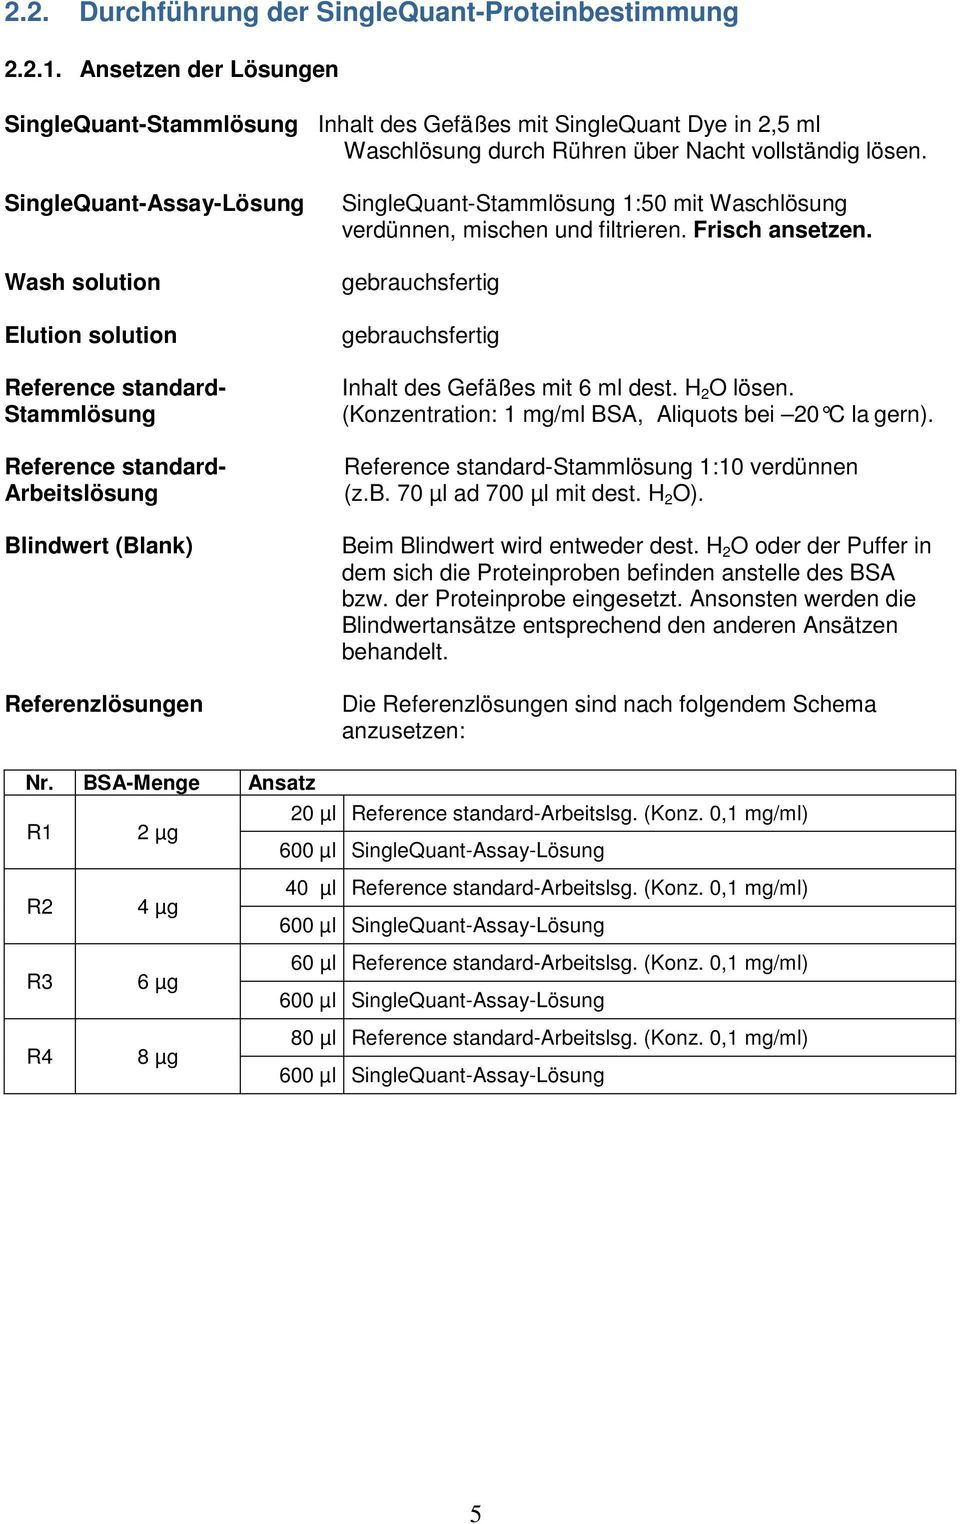 SingleQuant-Assay-Lösung Wash solution Elution solution Reference standard- Stammlösung Reference standard- Arbeitslösung Blindwert (Blank) Referenzlösungen SingleQuant-Stammlösung 1:50 mit